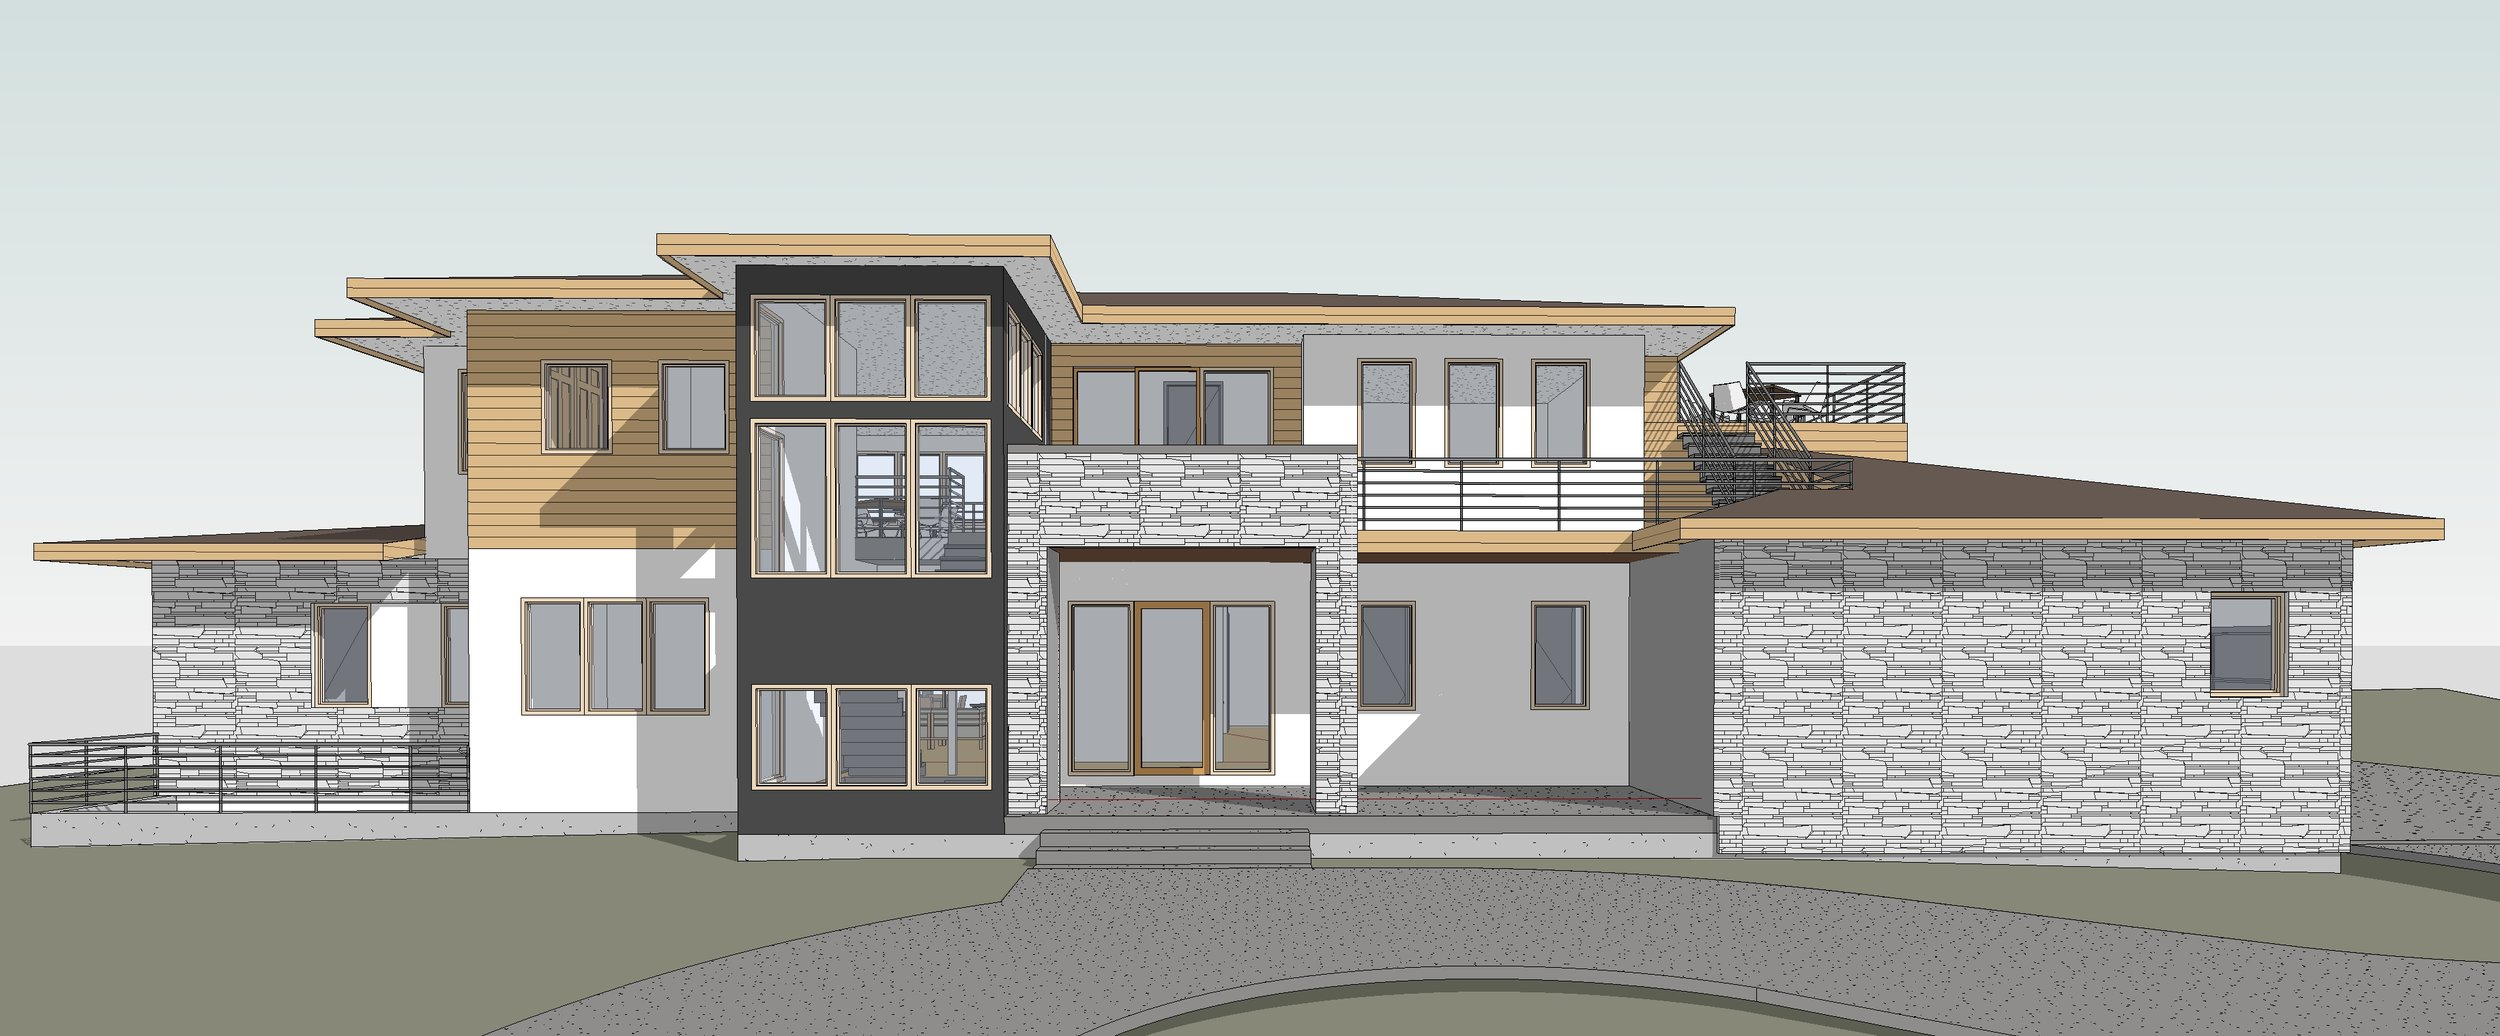 Ravulapati Residence3 - 3D View - ENTRY.jpg